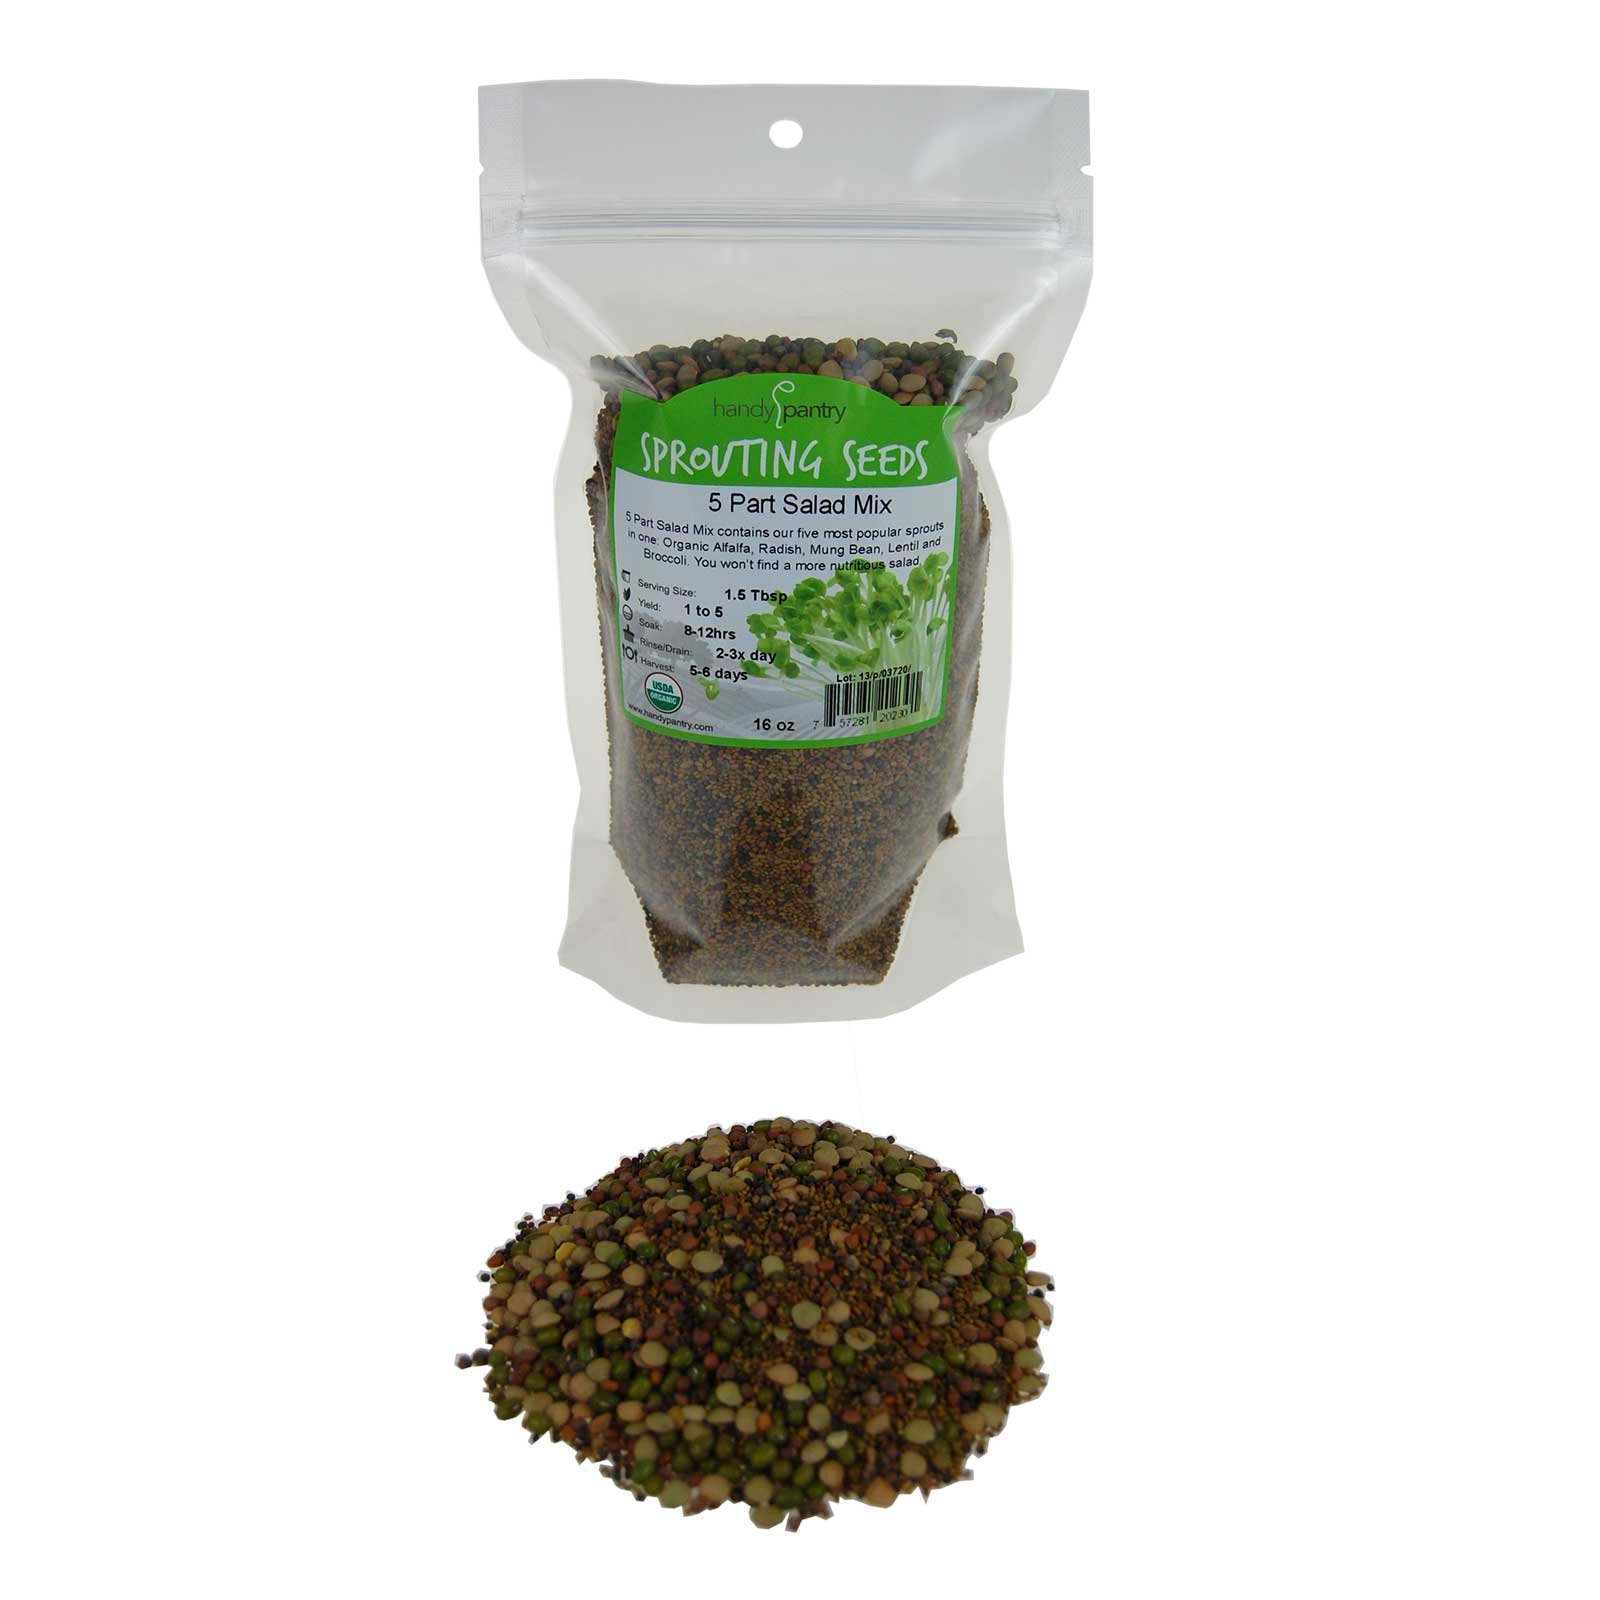 5 Part Salad Sprout Seed Mix -1 Lbs- Organic Sprouting Seeds: Radish, Broccoli, Alfalfa, Green Lentil & Mung Bean - For Sprouts